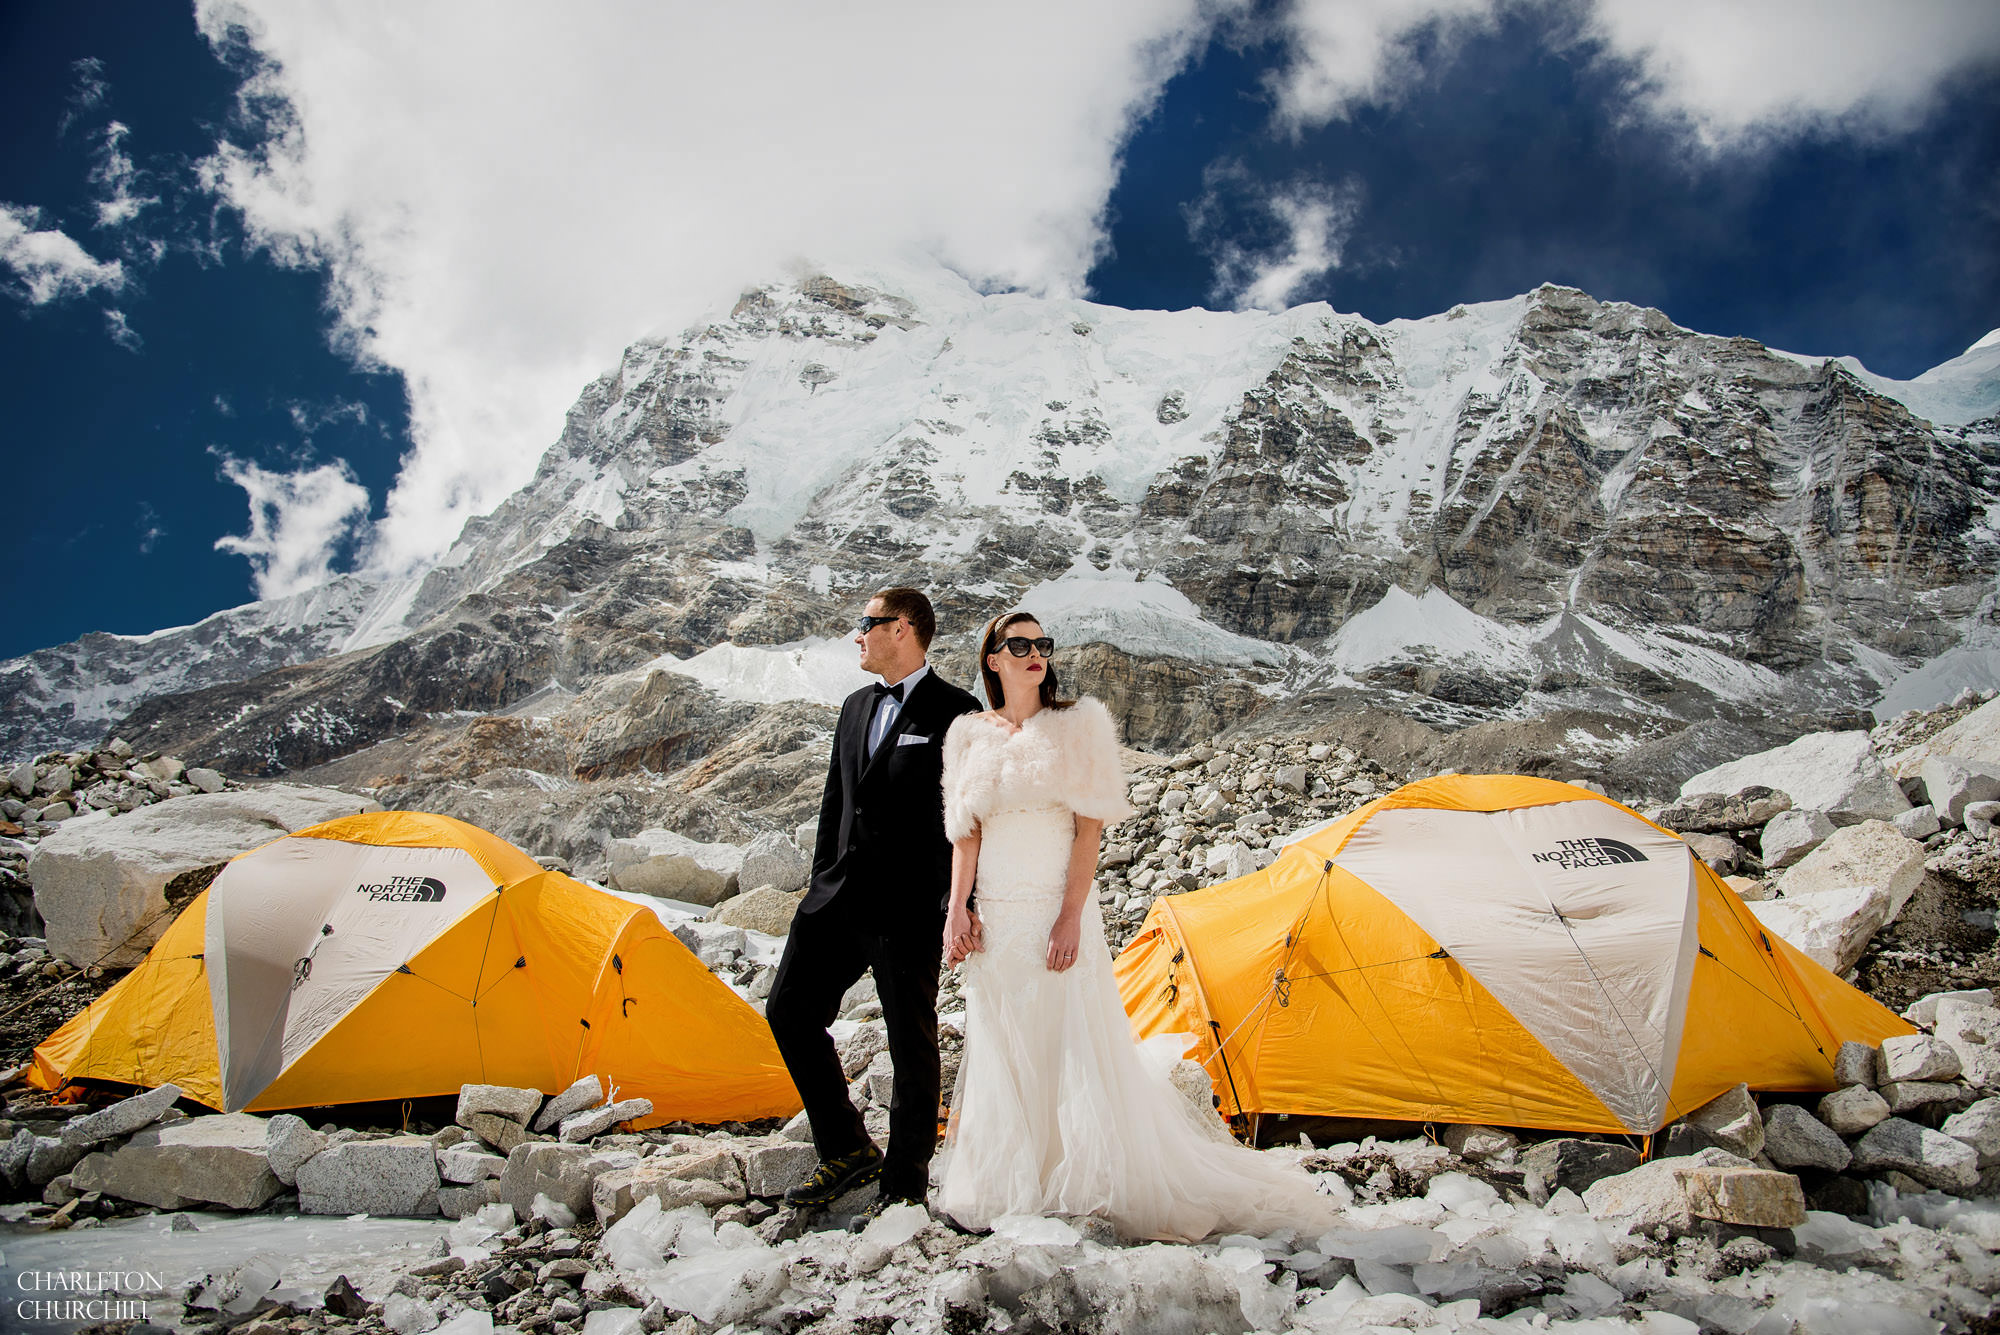 married in front of The North Face Everest tents at base camp, first couple with wedding dress